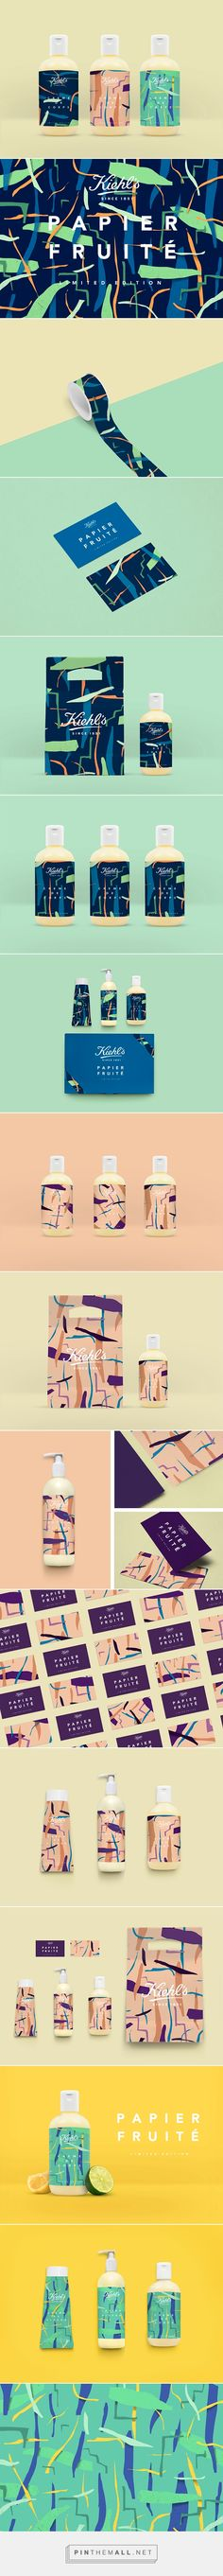 Kiehl's - Papier Fruité , Packaging and Branding Brand Identity Design, Corporate Design, Graphic Design Typography, Corporate Identity, Packaging Box Design, Label Design, Package Design, Fruit Packaging, Web Design